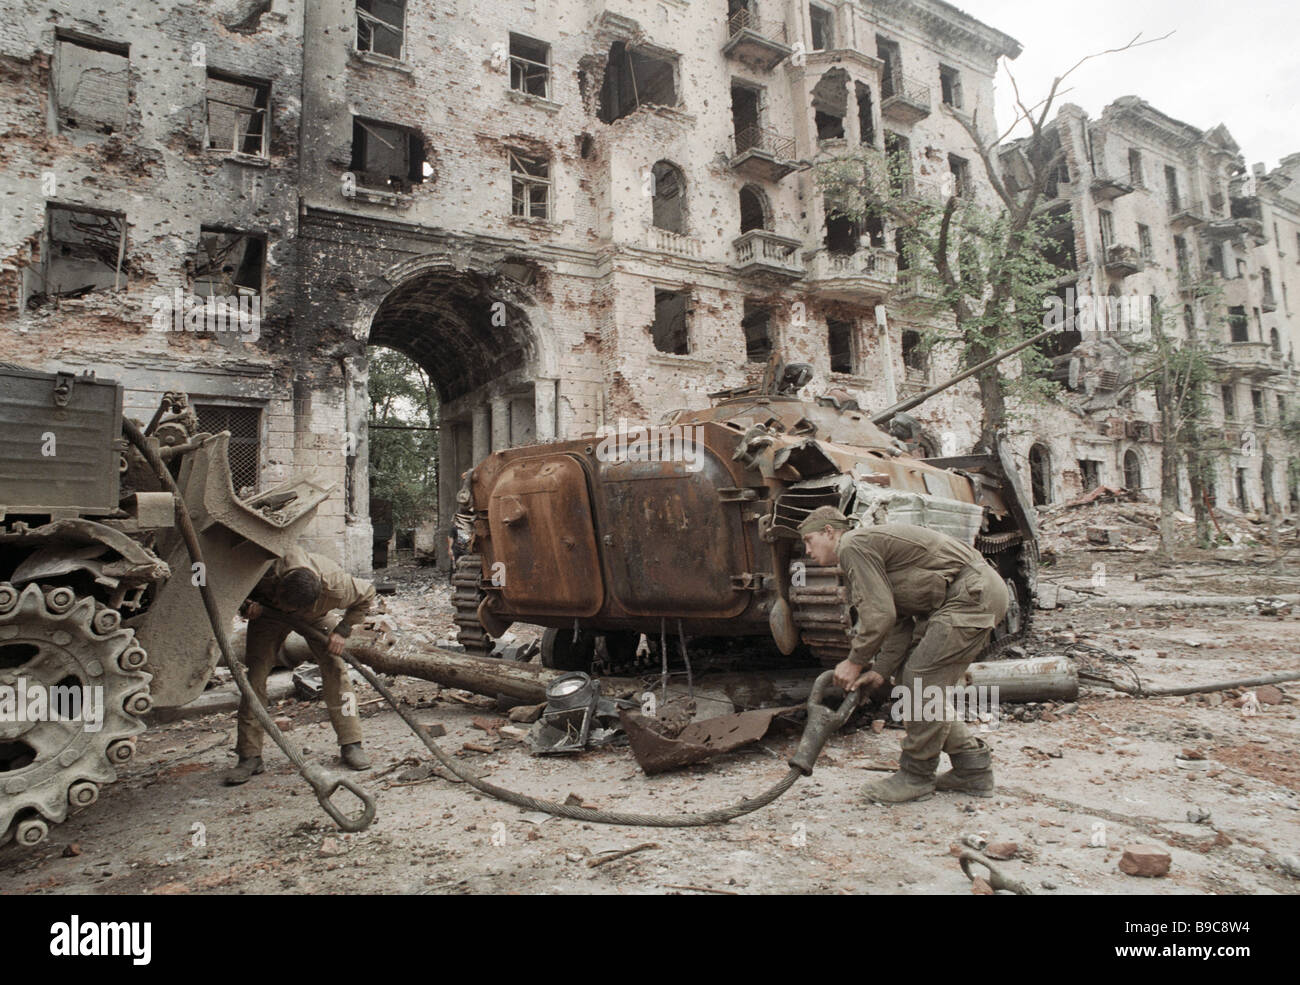 Federal troops getting ready to removed destroyed vehicles from ruined Grozny - Stock Image